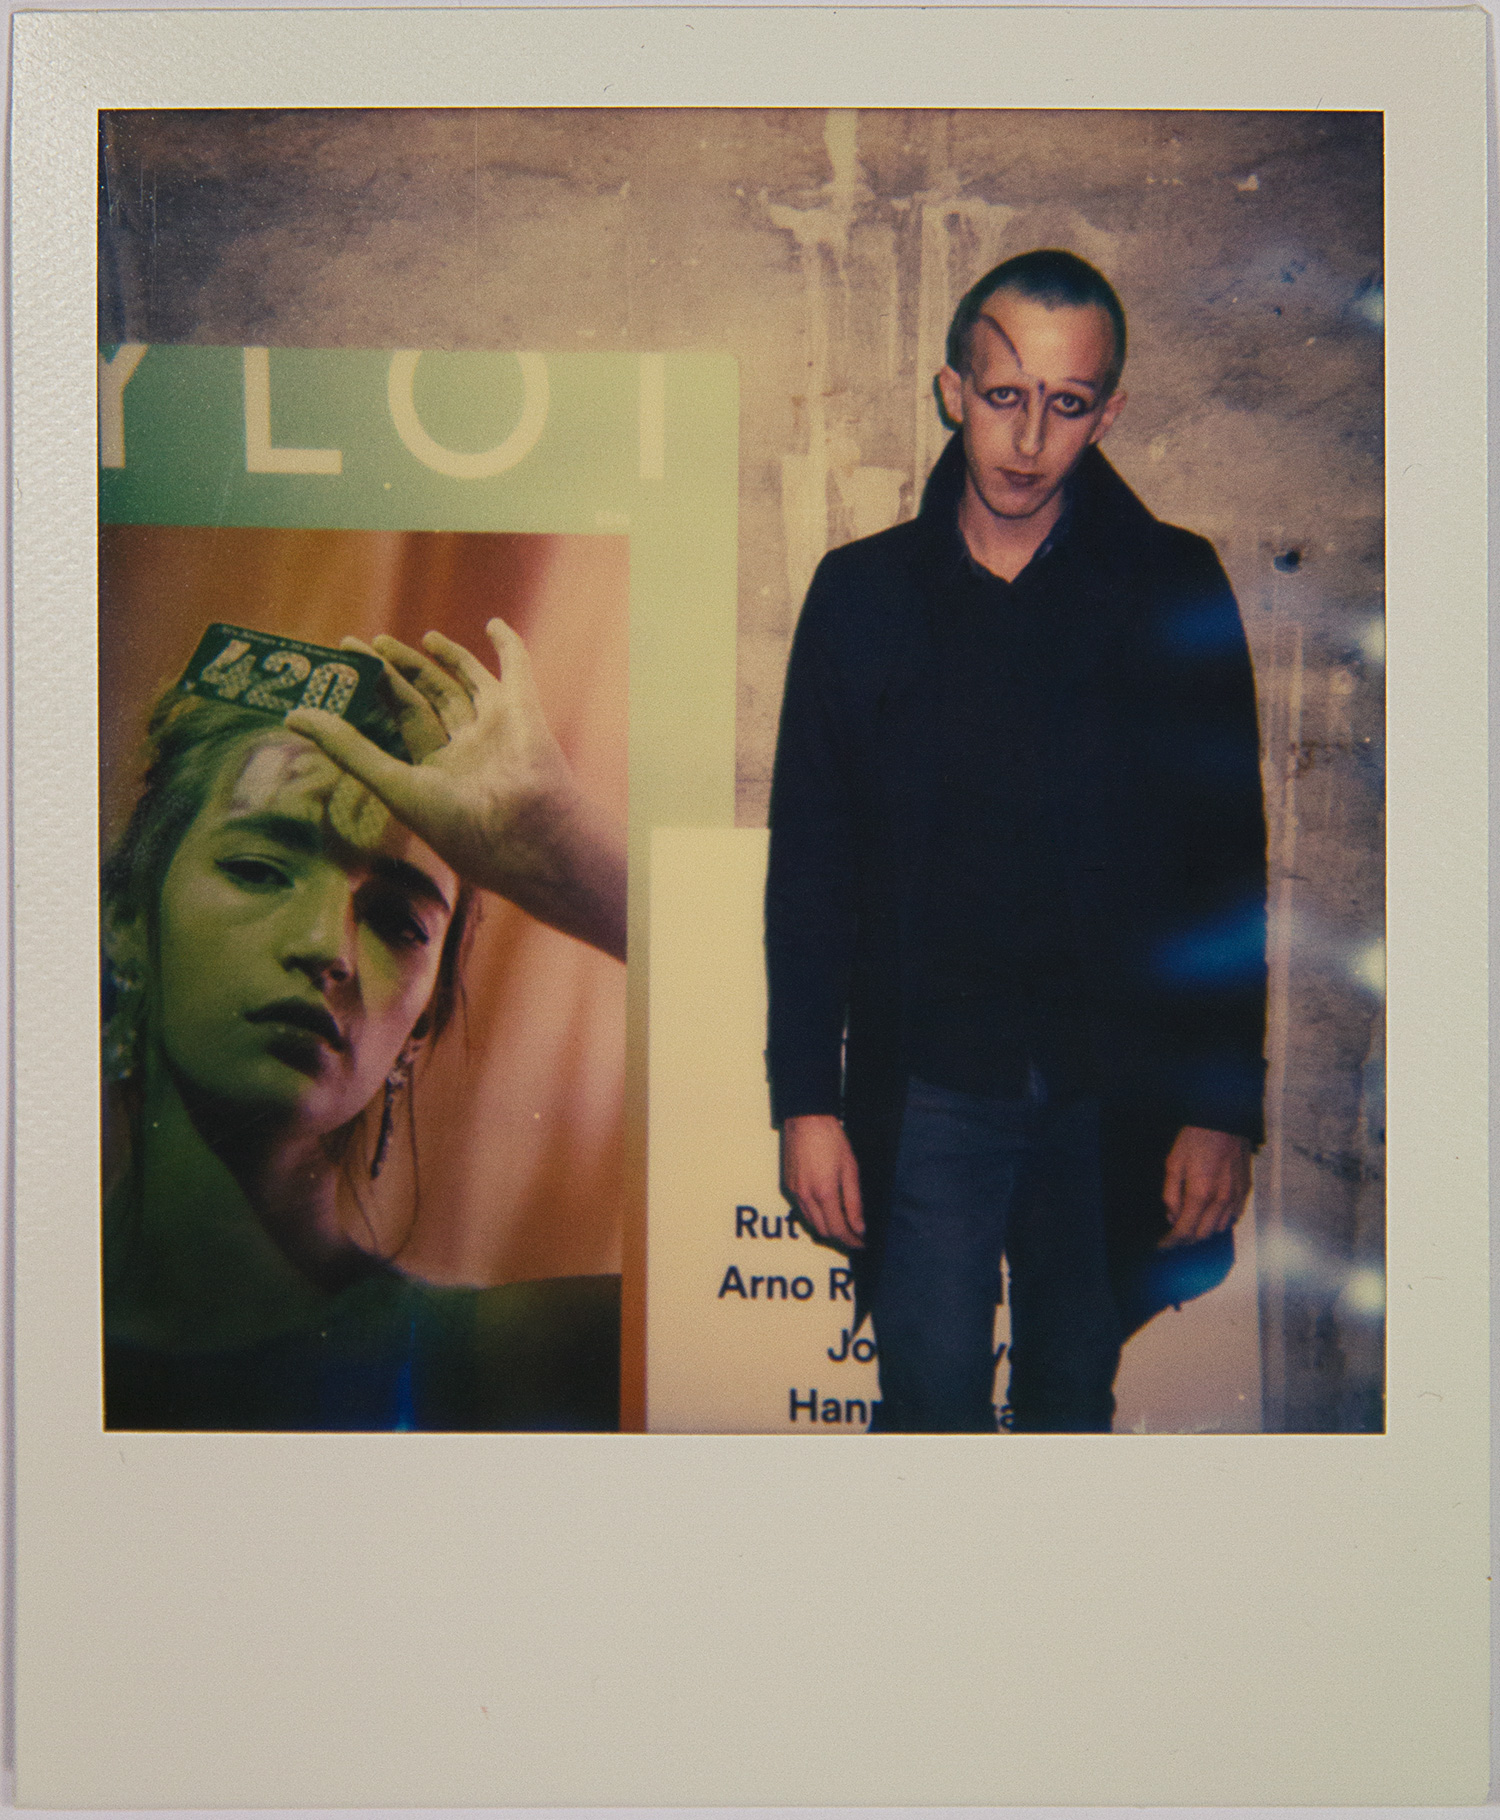 PYLOT ISSUE 04 LAUNCH PARTY IMPOSSIBLE PROJECT 20